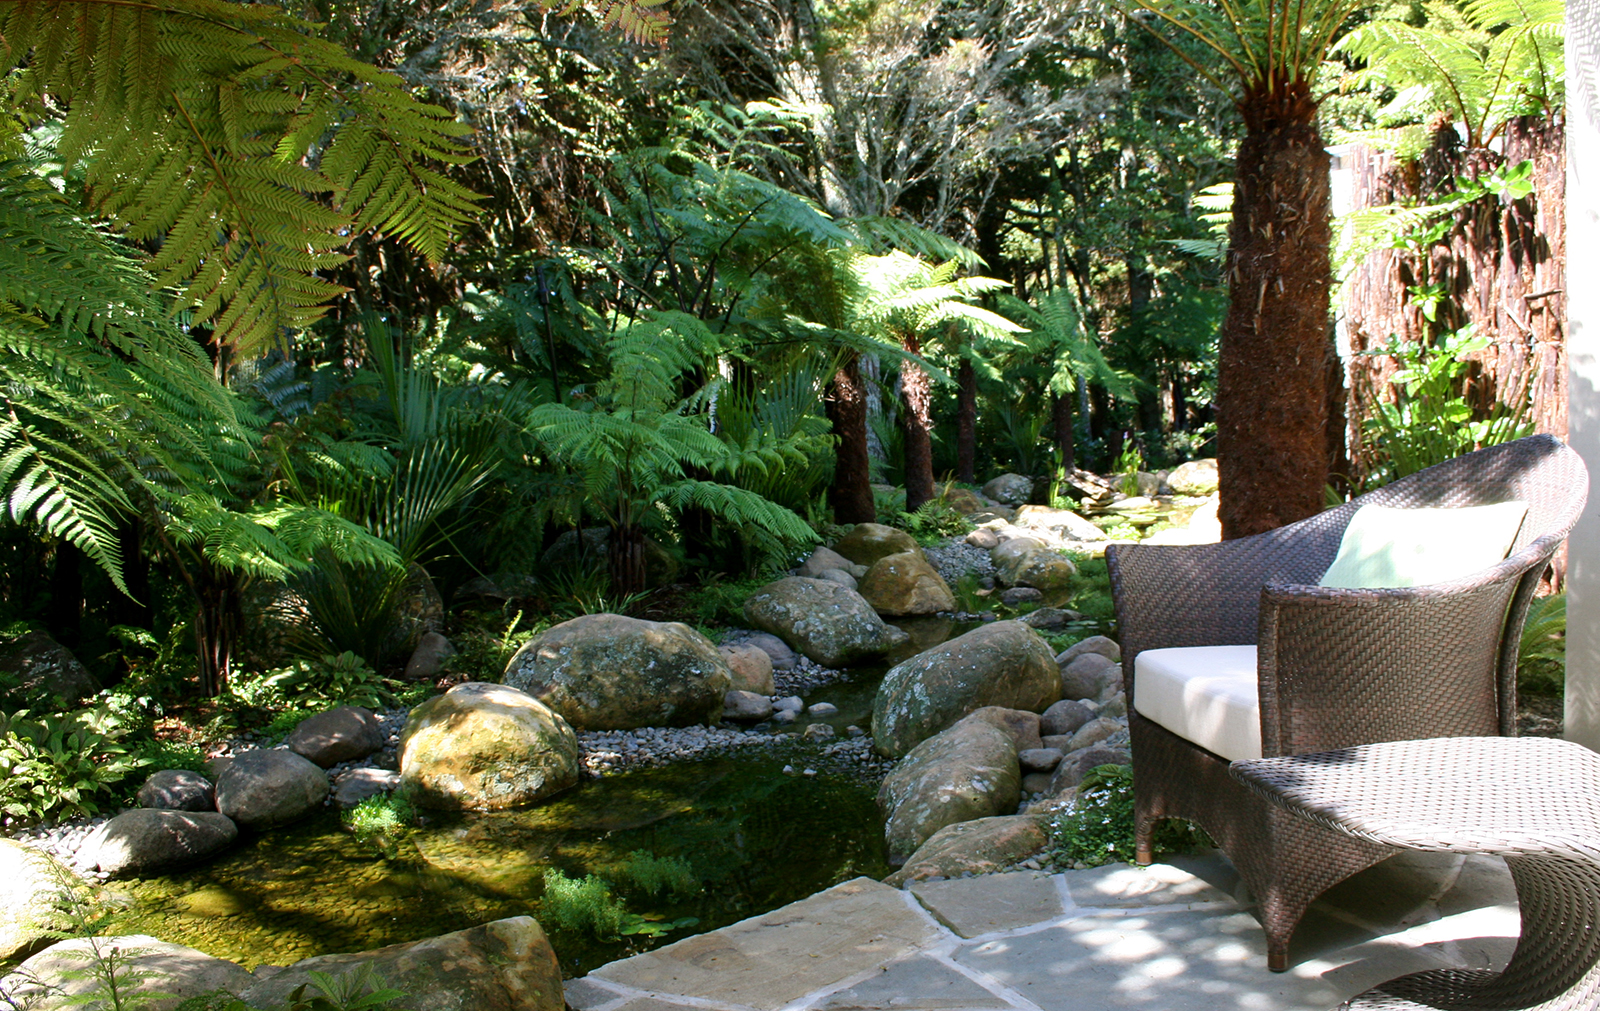 Relax amongst the subtropical plantings and rocky stream